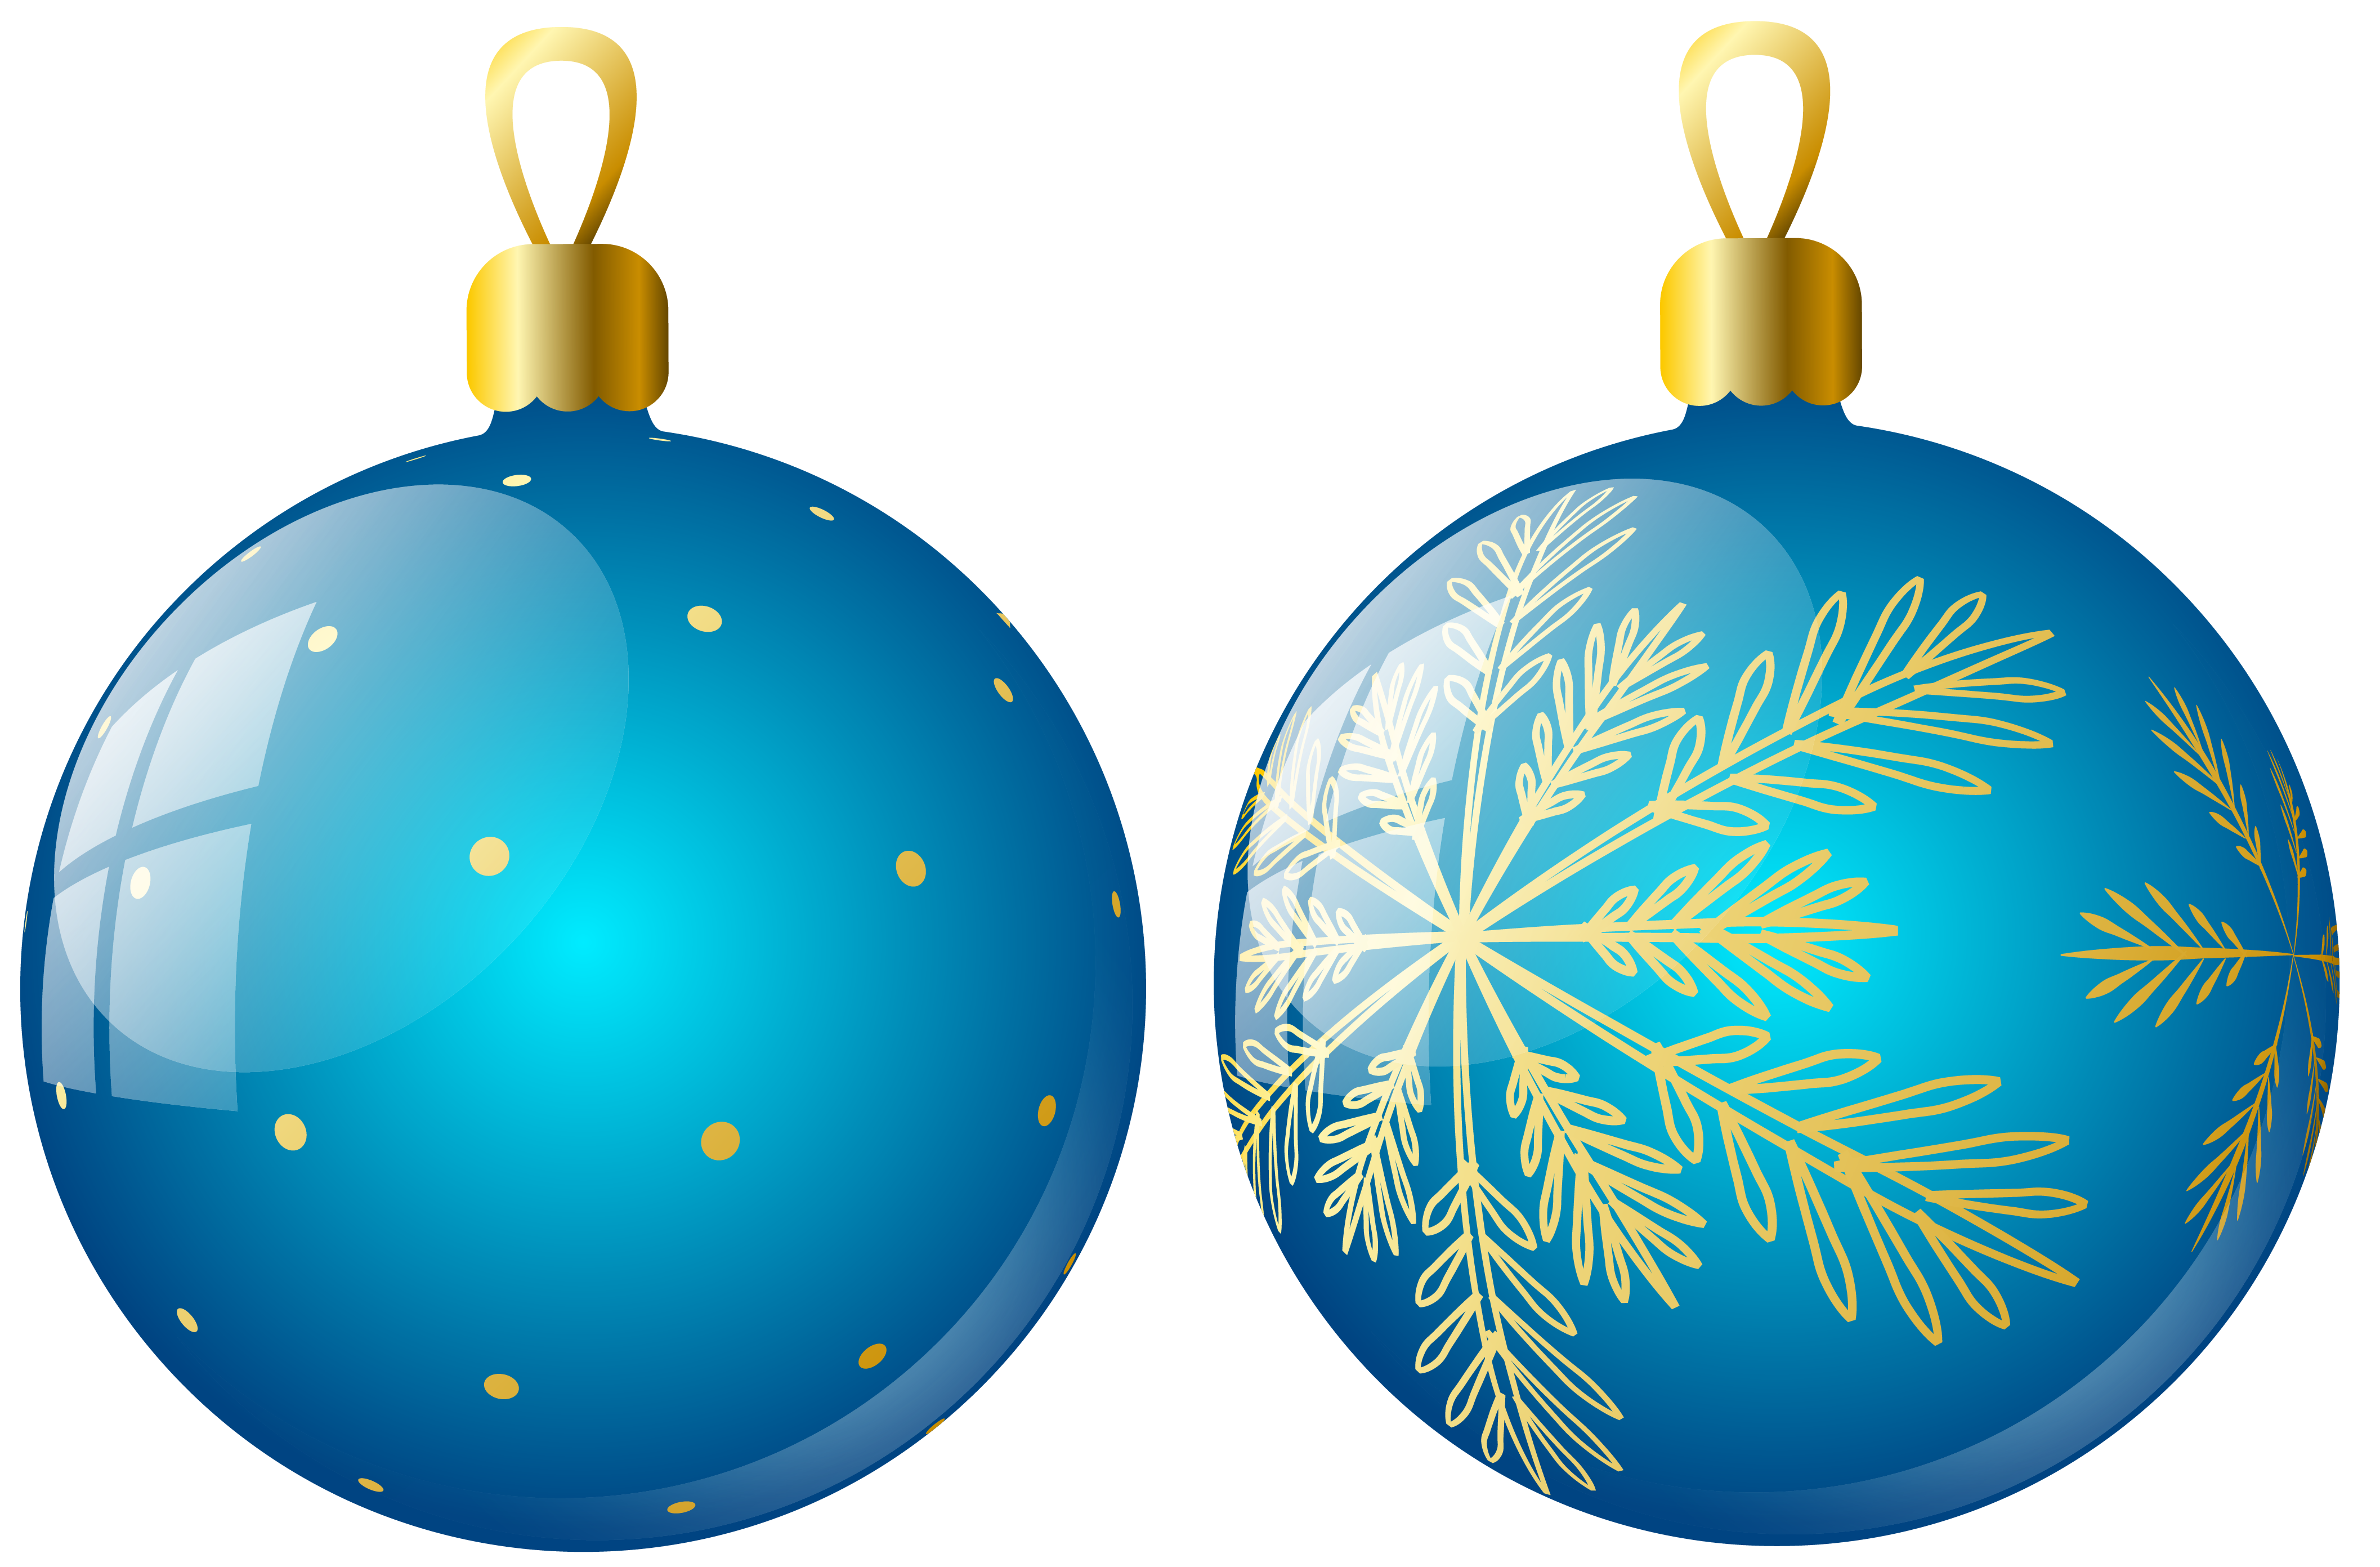 Christmas tree ball ornament clipart clipground for Christmas tree photo ornaments